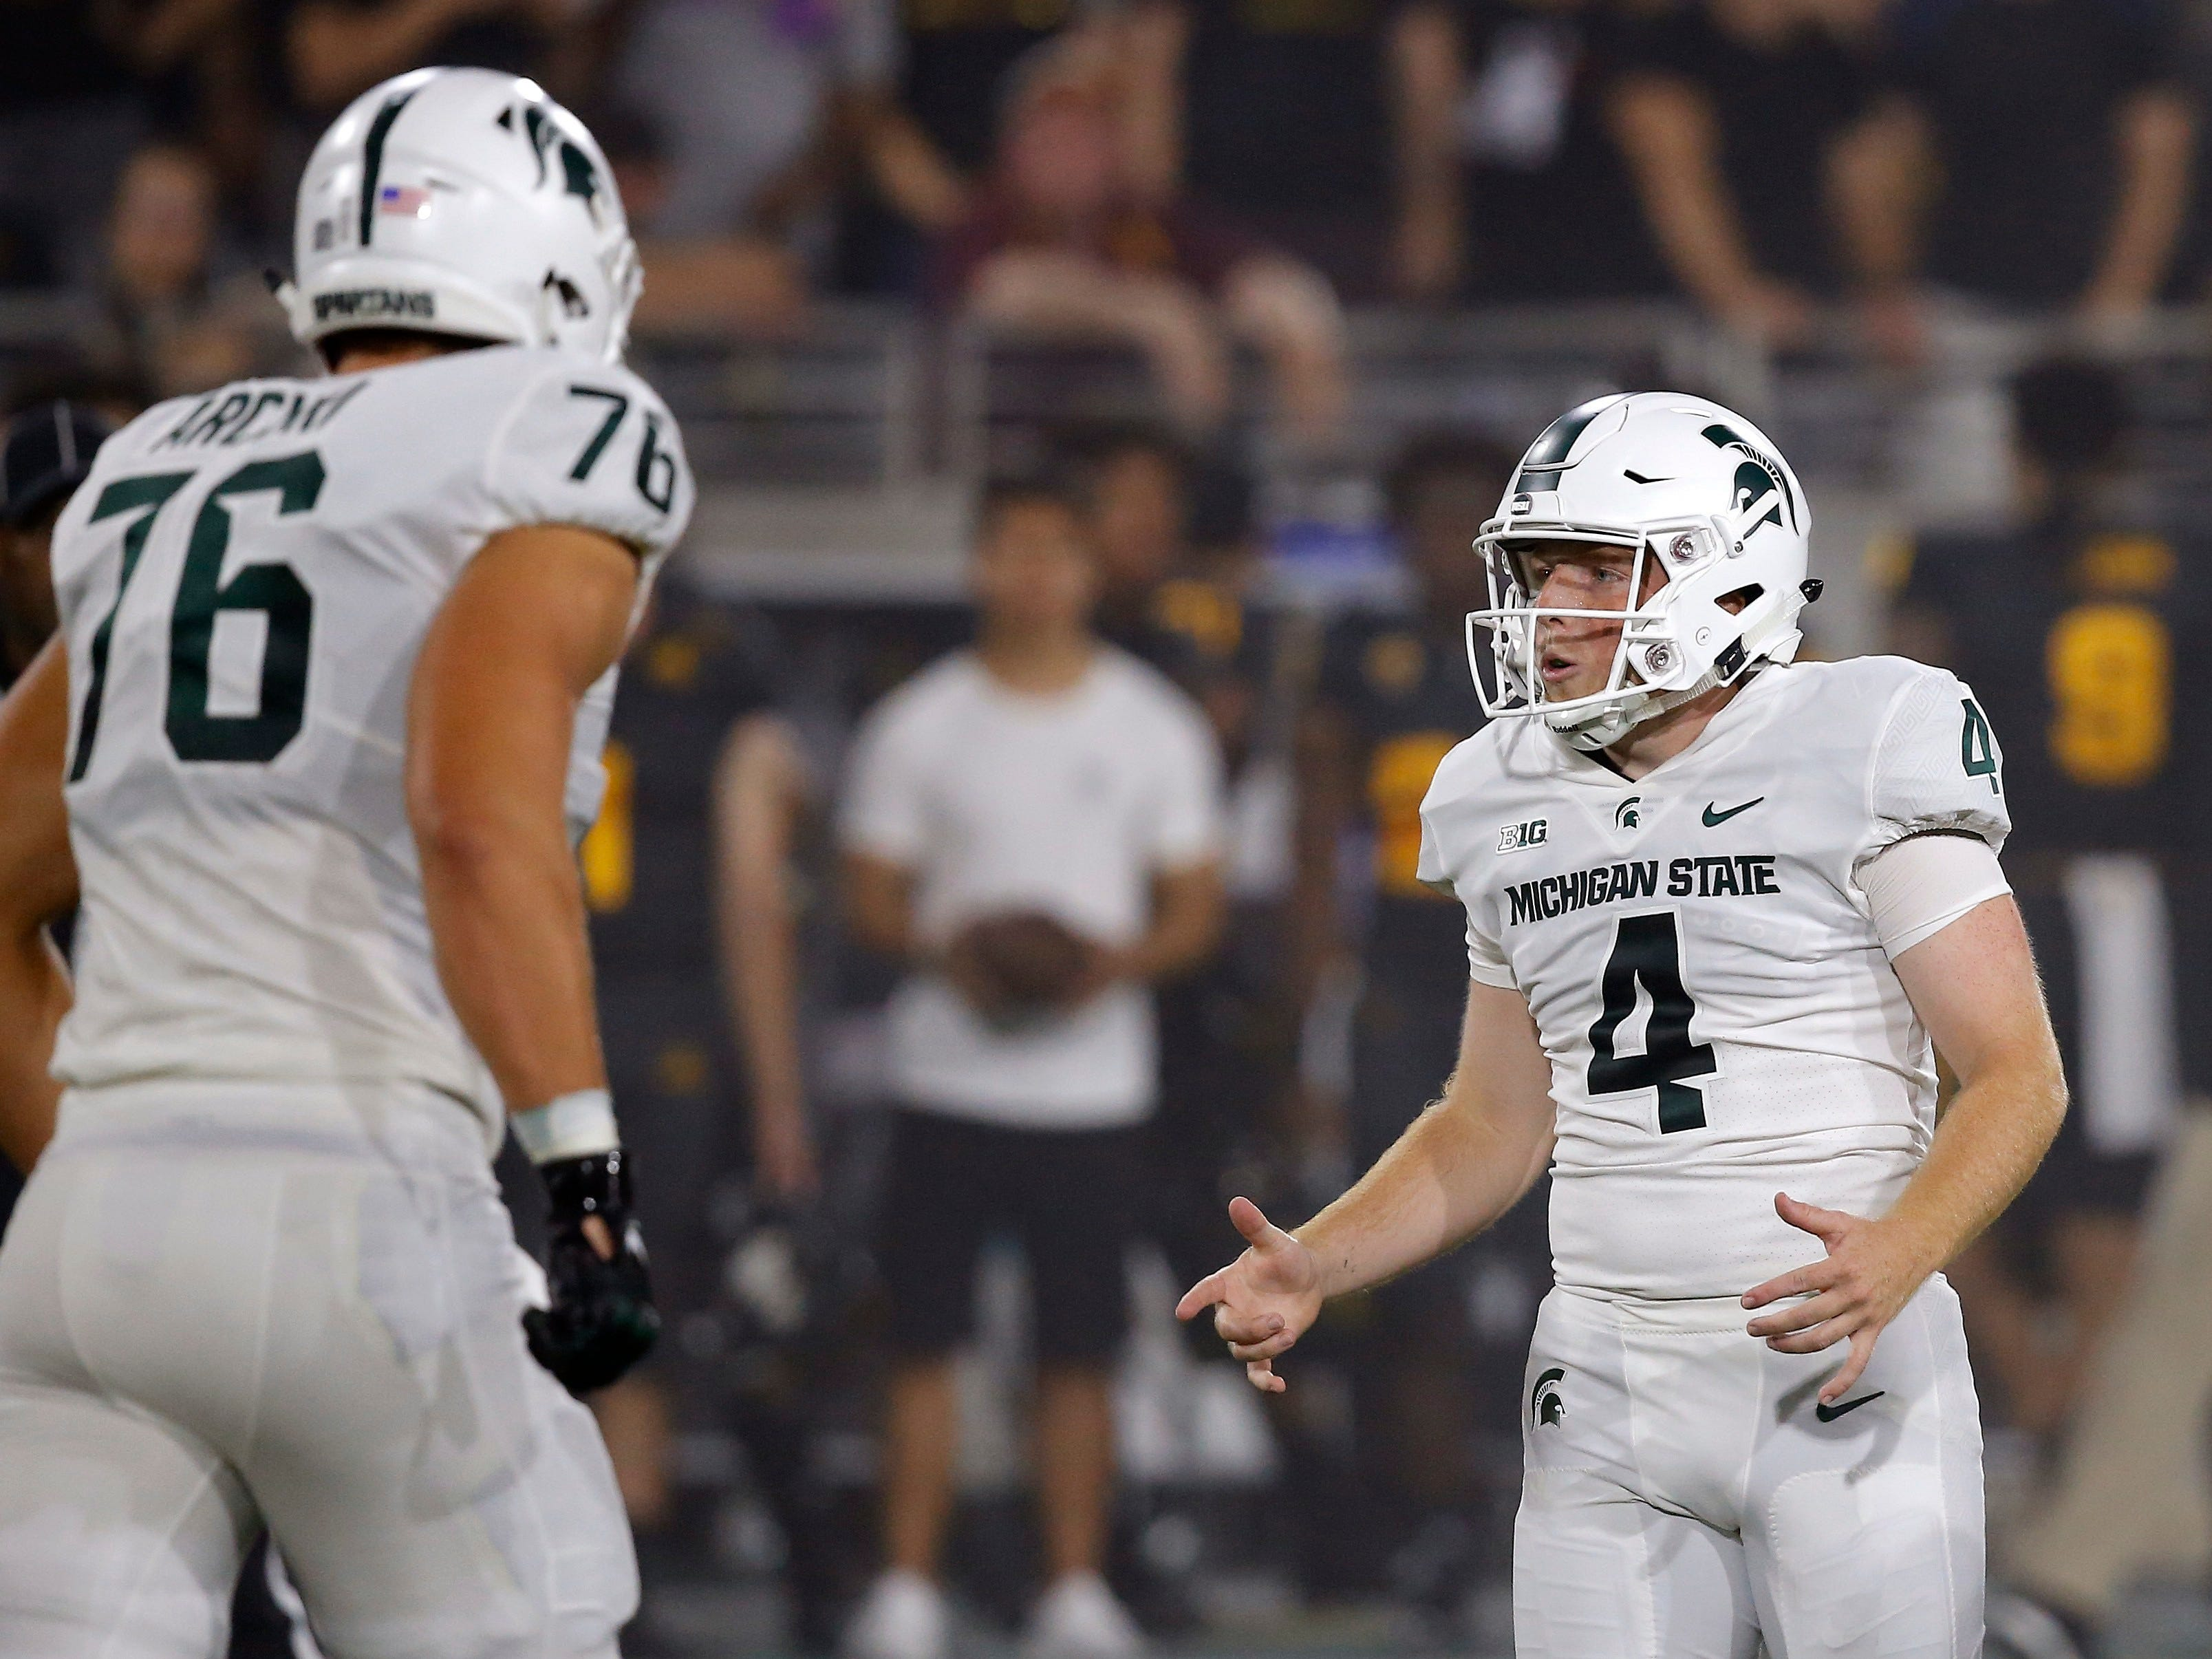 Michigan State kicker Matt Coghlin (4) celebrates his field goal against Arizona State with offensive tackle AJ Arcuri (76) during the first half of an NCAA college football game Saturday, Sept. 8, 2018, in Tempe, Ariz.